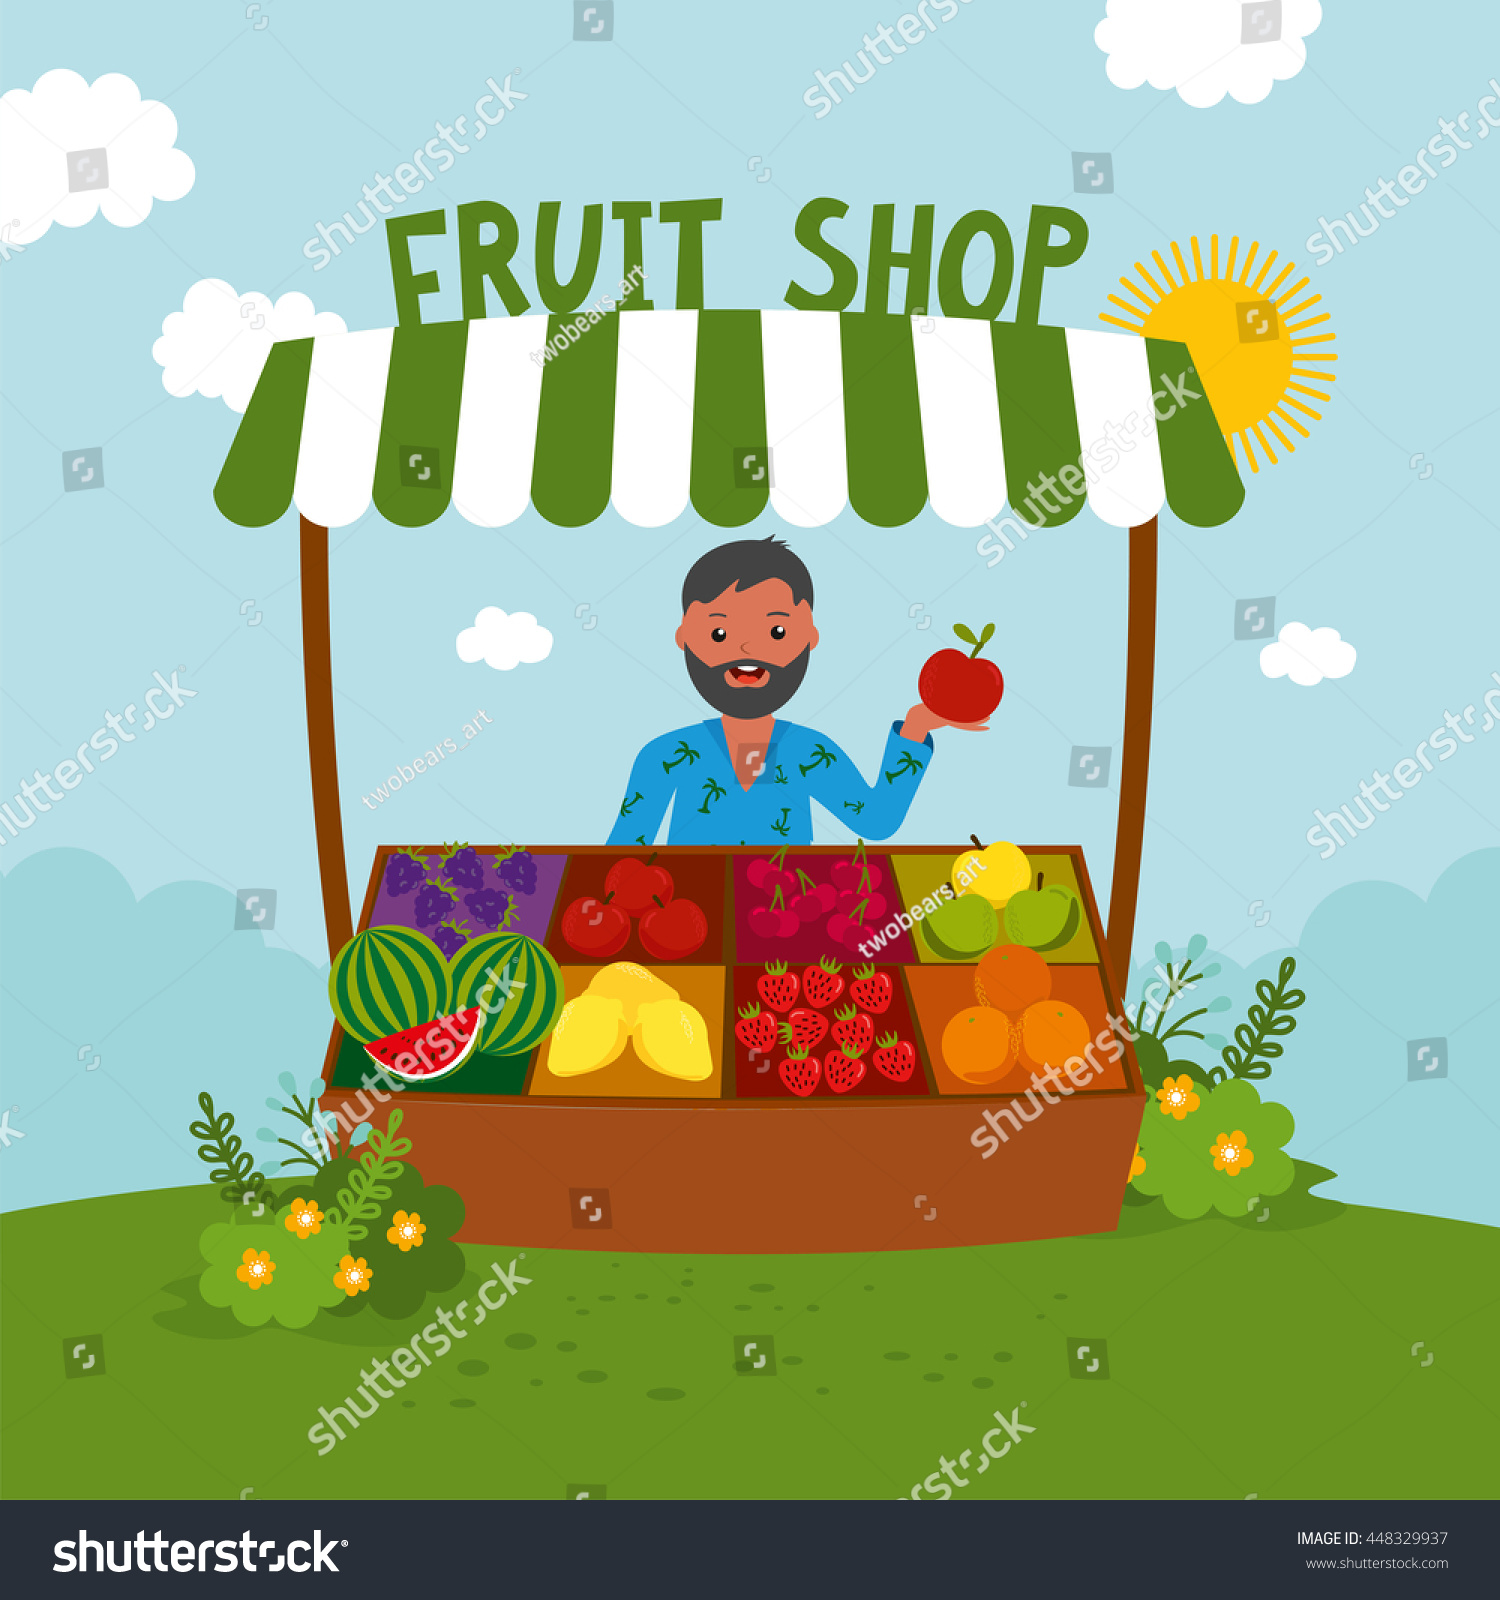 fruit berries retail business owner working stock vector Vegetable Stand Clip Art Vegetable Stand Clip Art